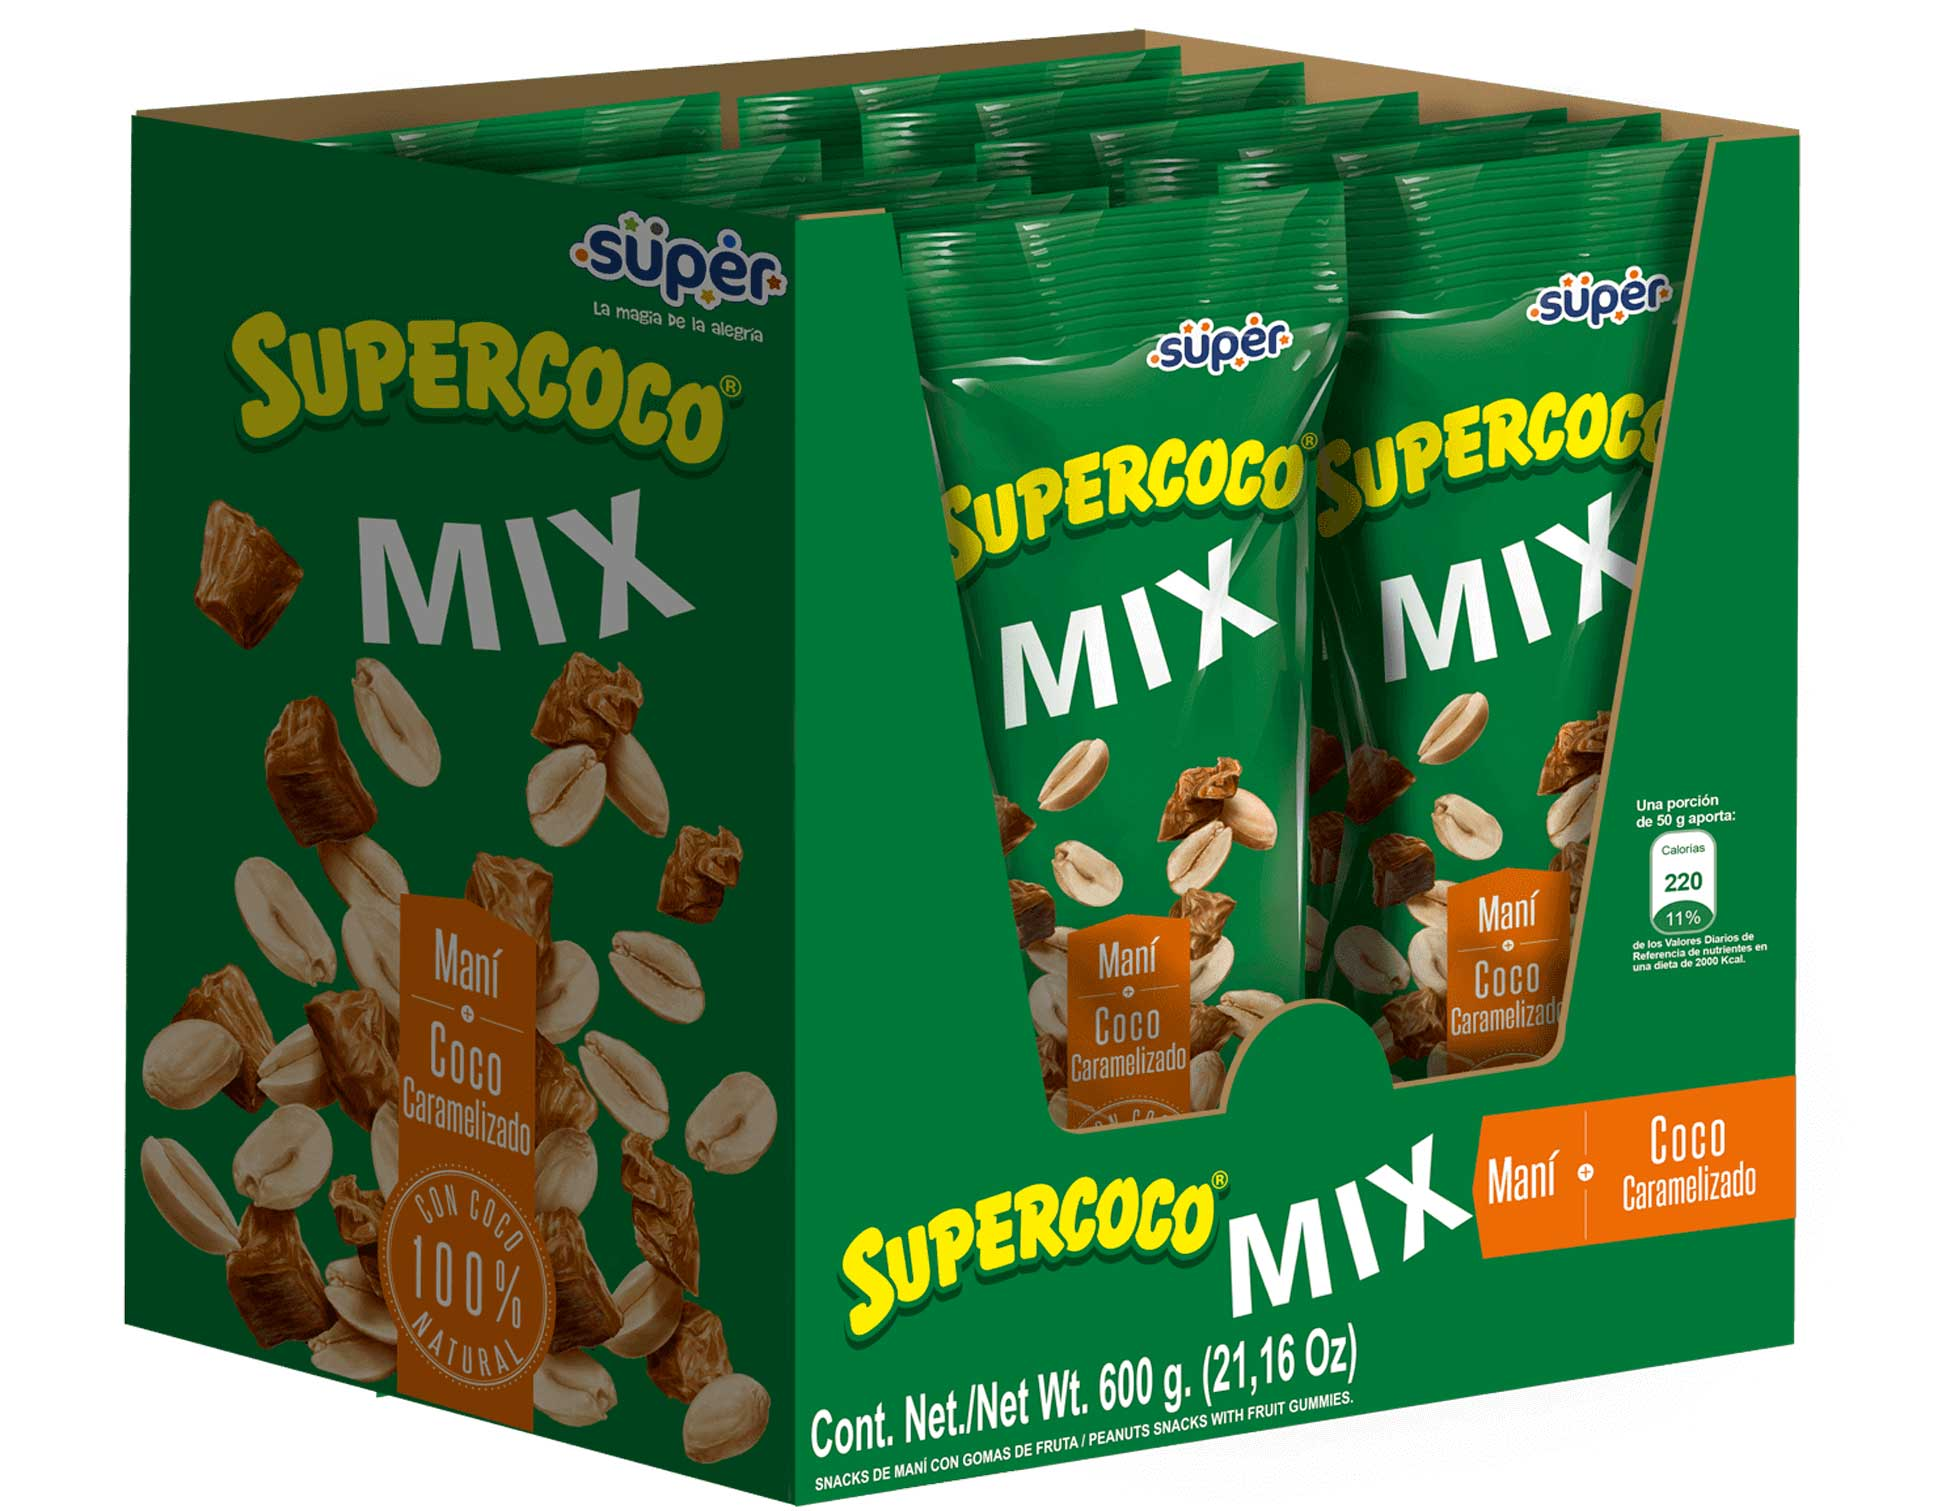 super-coco-mix-display-1.jpg